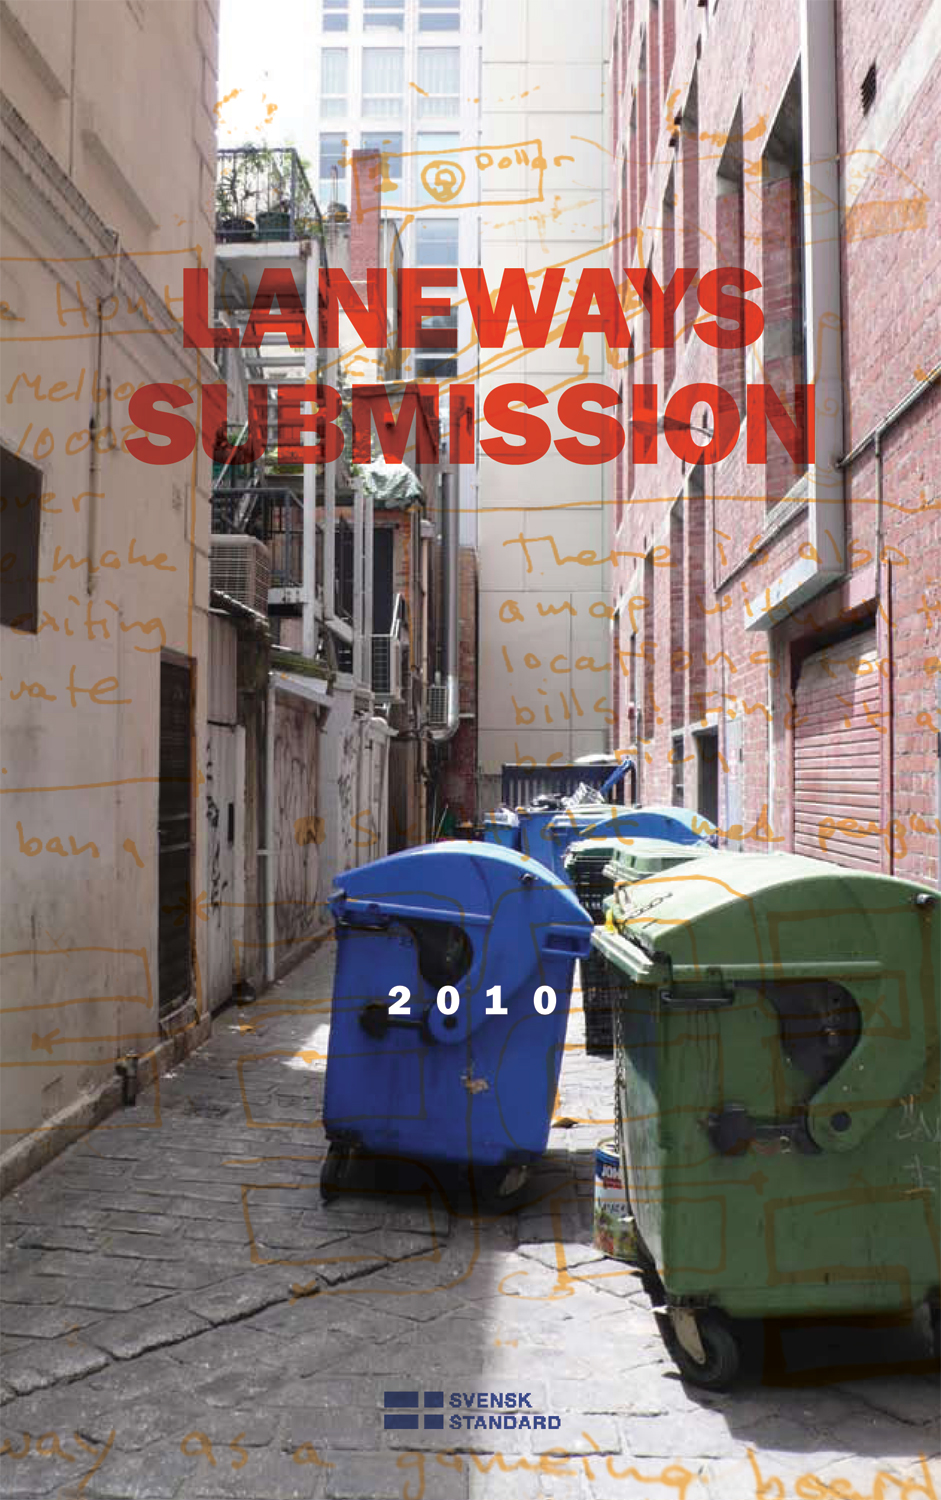 laneways_proposal-1.jpg